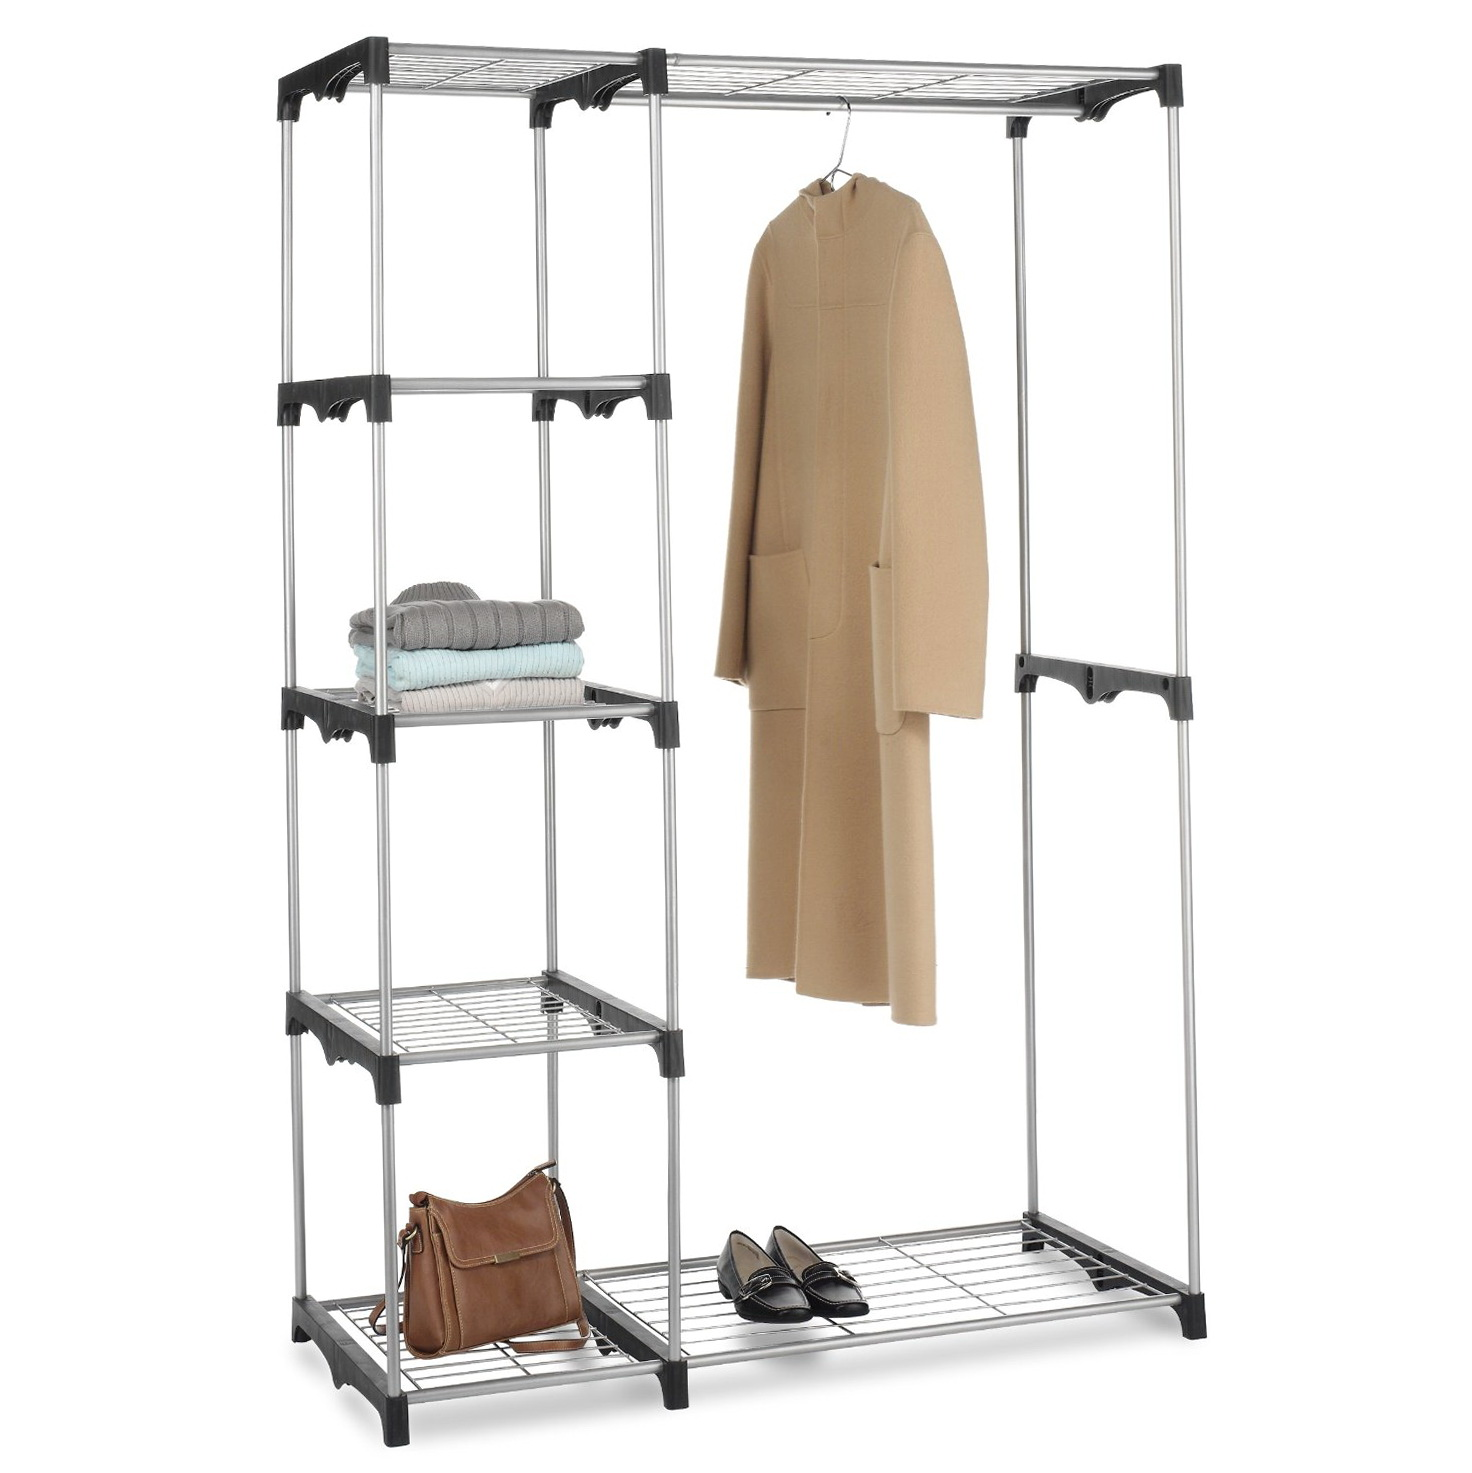 en high web highrack shelving the rack wanzl mobile wardrobe garderobe mit clothes and solutions systems stand products installation kleidung de